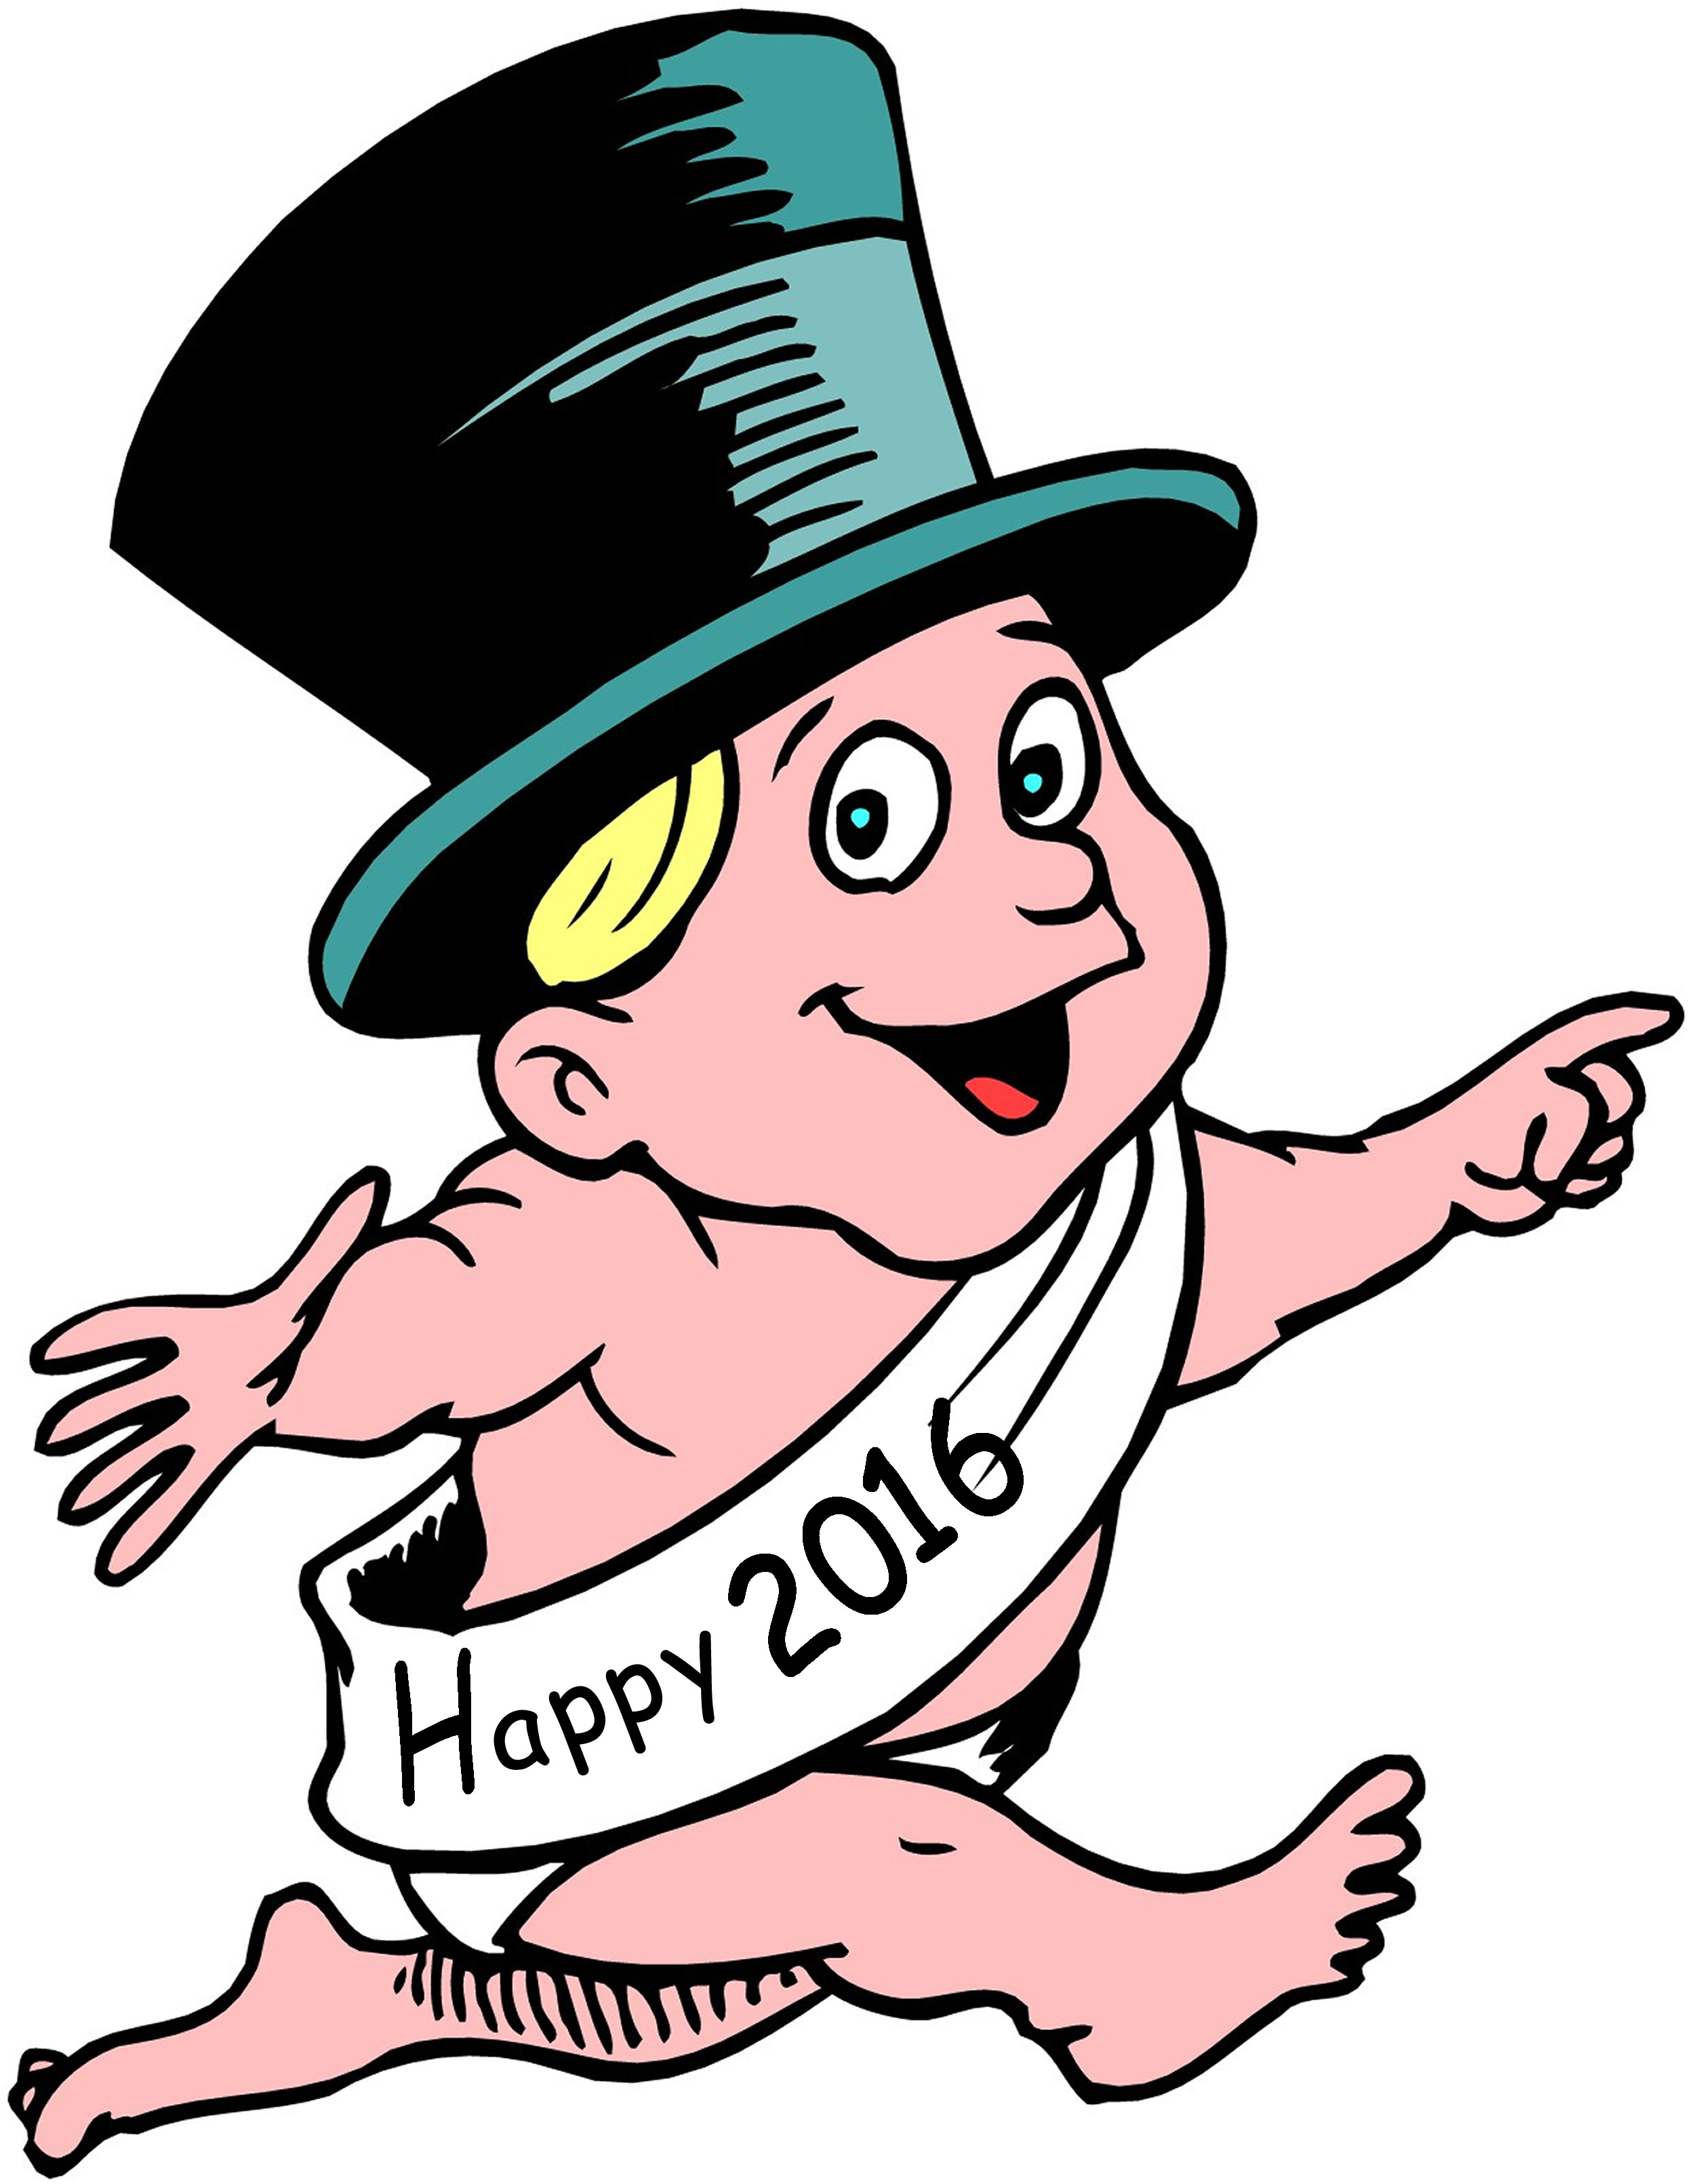 New Year 2015 16 Graphics Clipart   New Year 2015 And 2016 Graphics